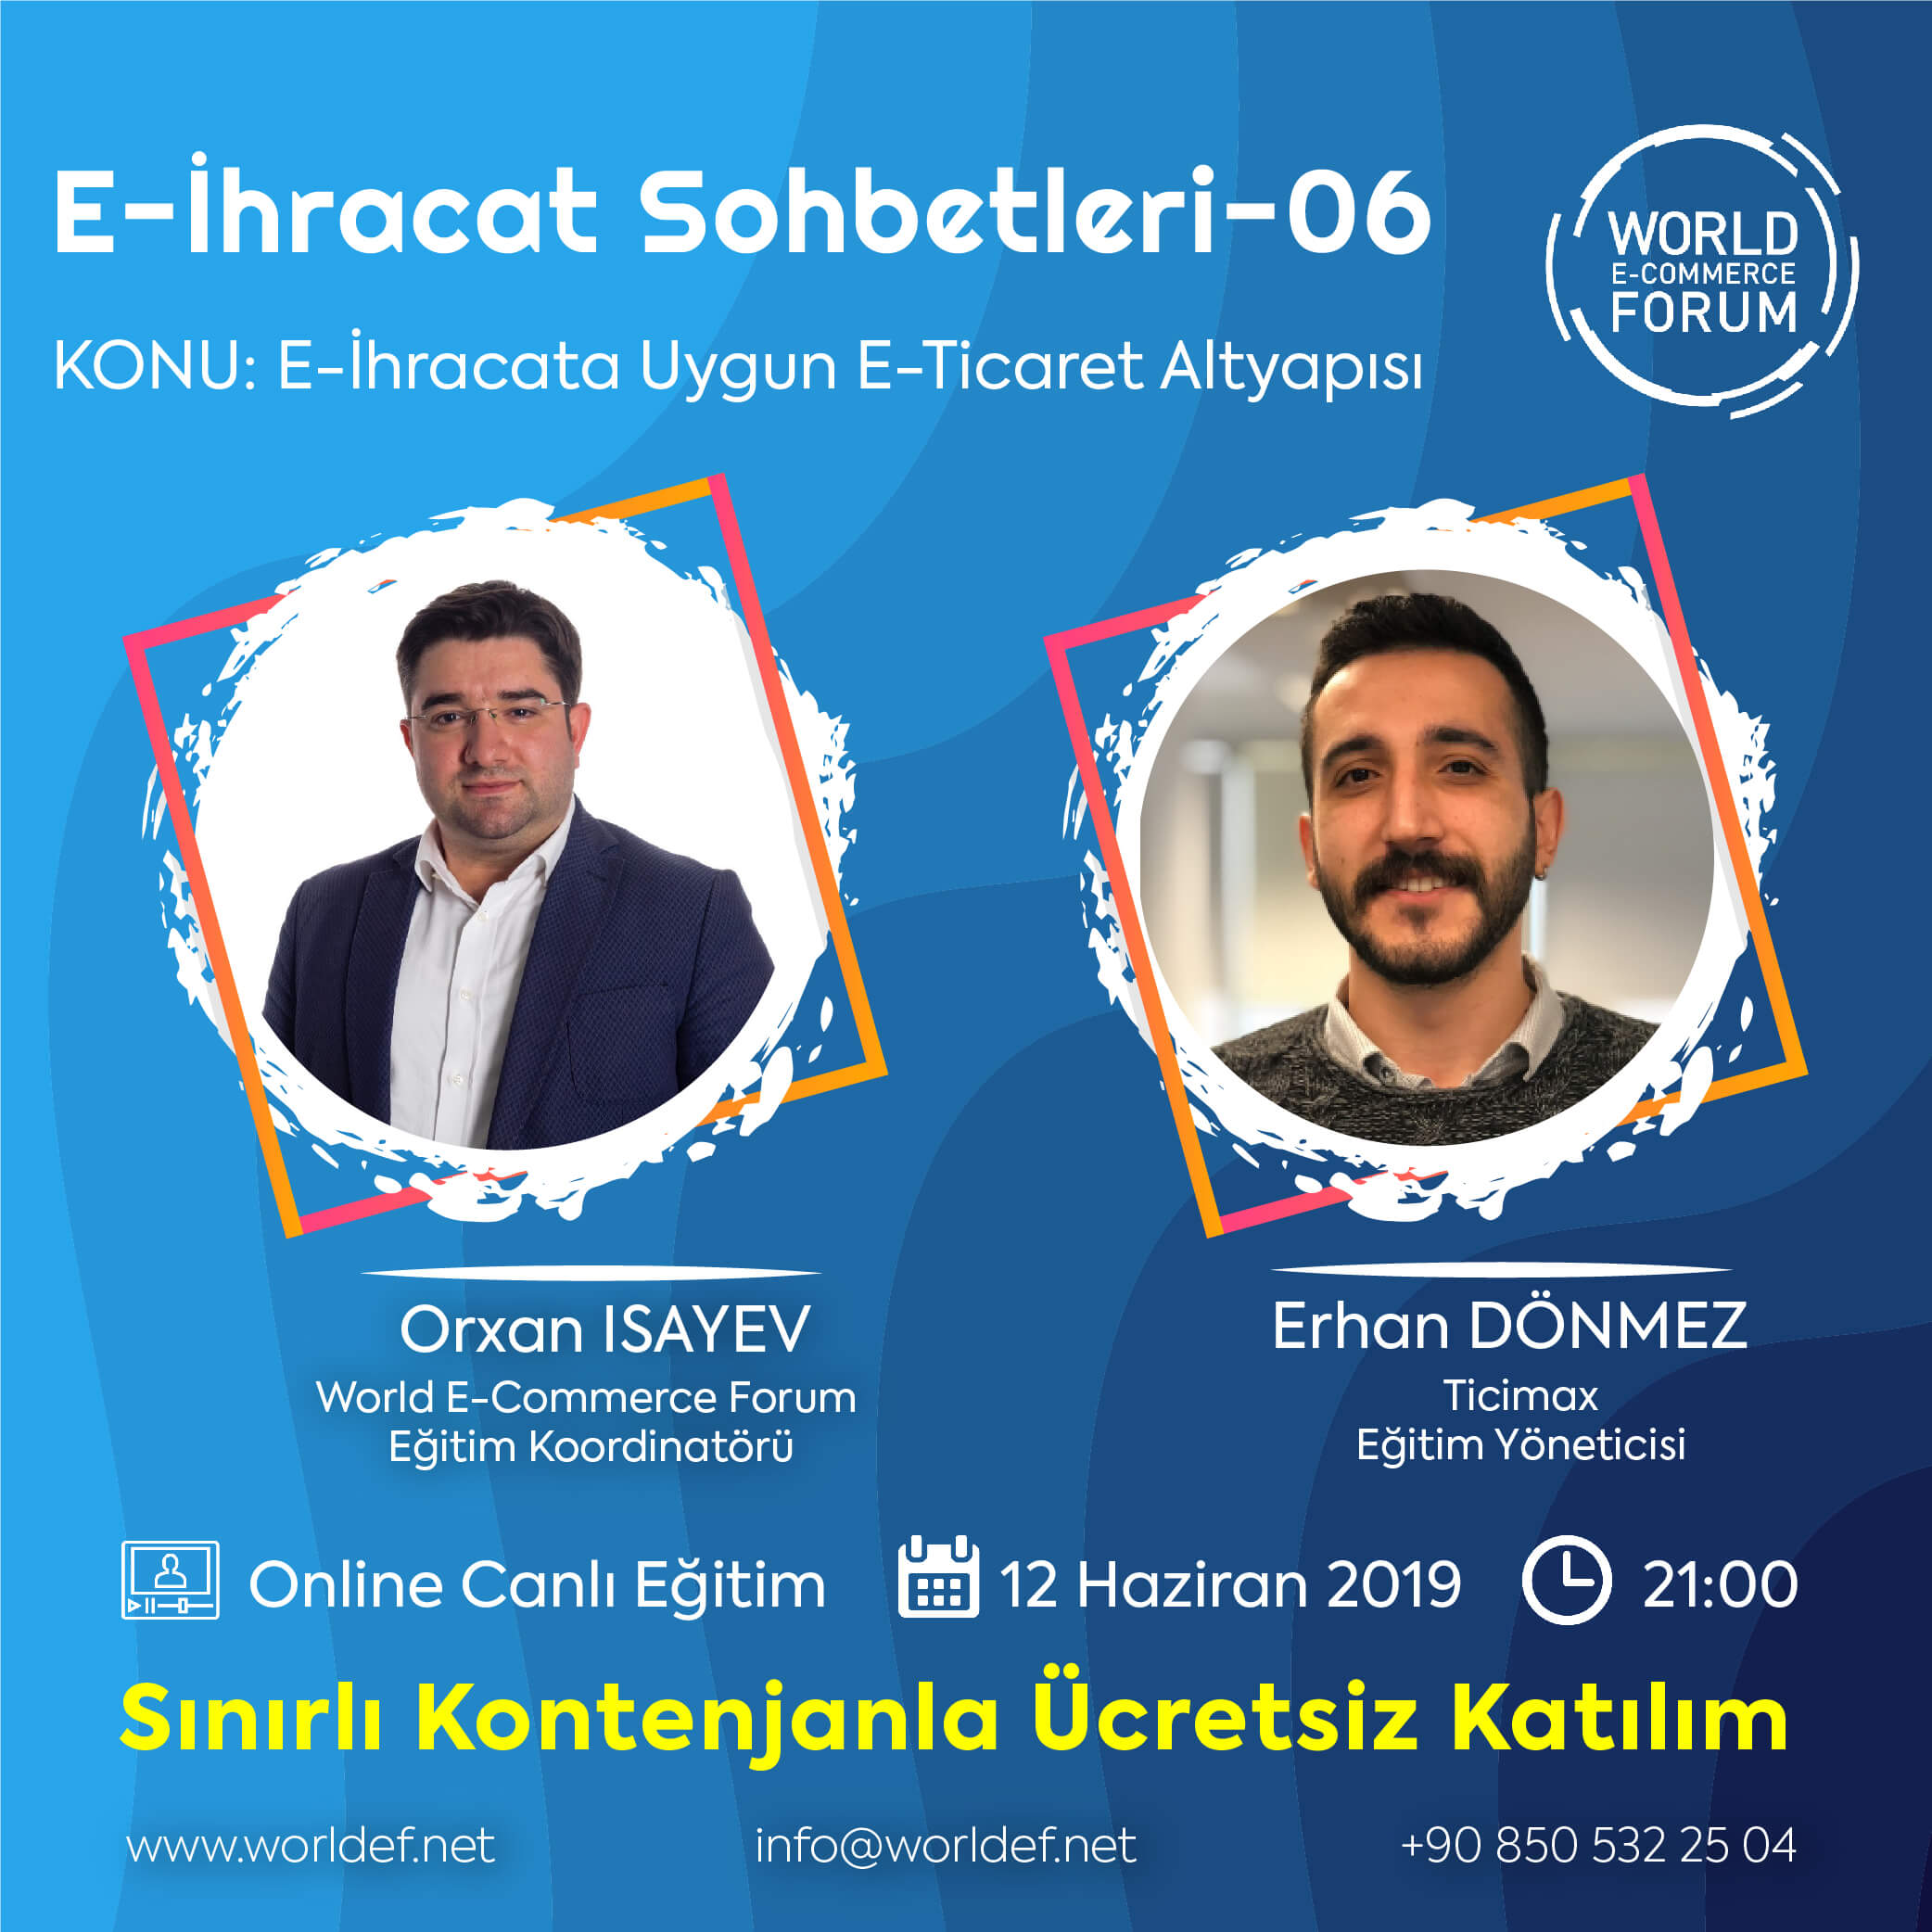 Training manager Erhan Dönmez from Ticimax Information Technologies Inc. will be the guest in the cross-border e-commerce webinar series this week!